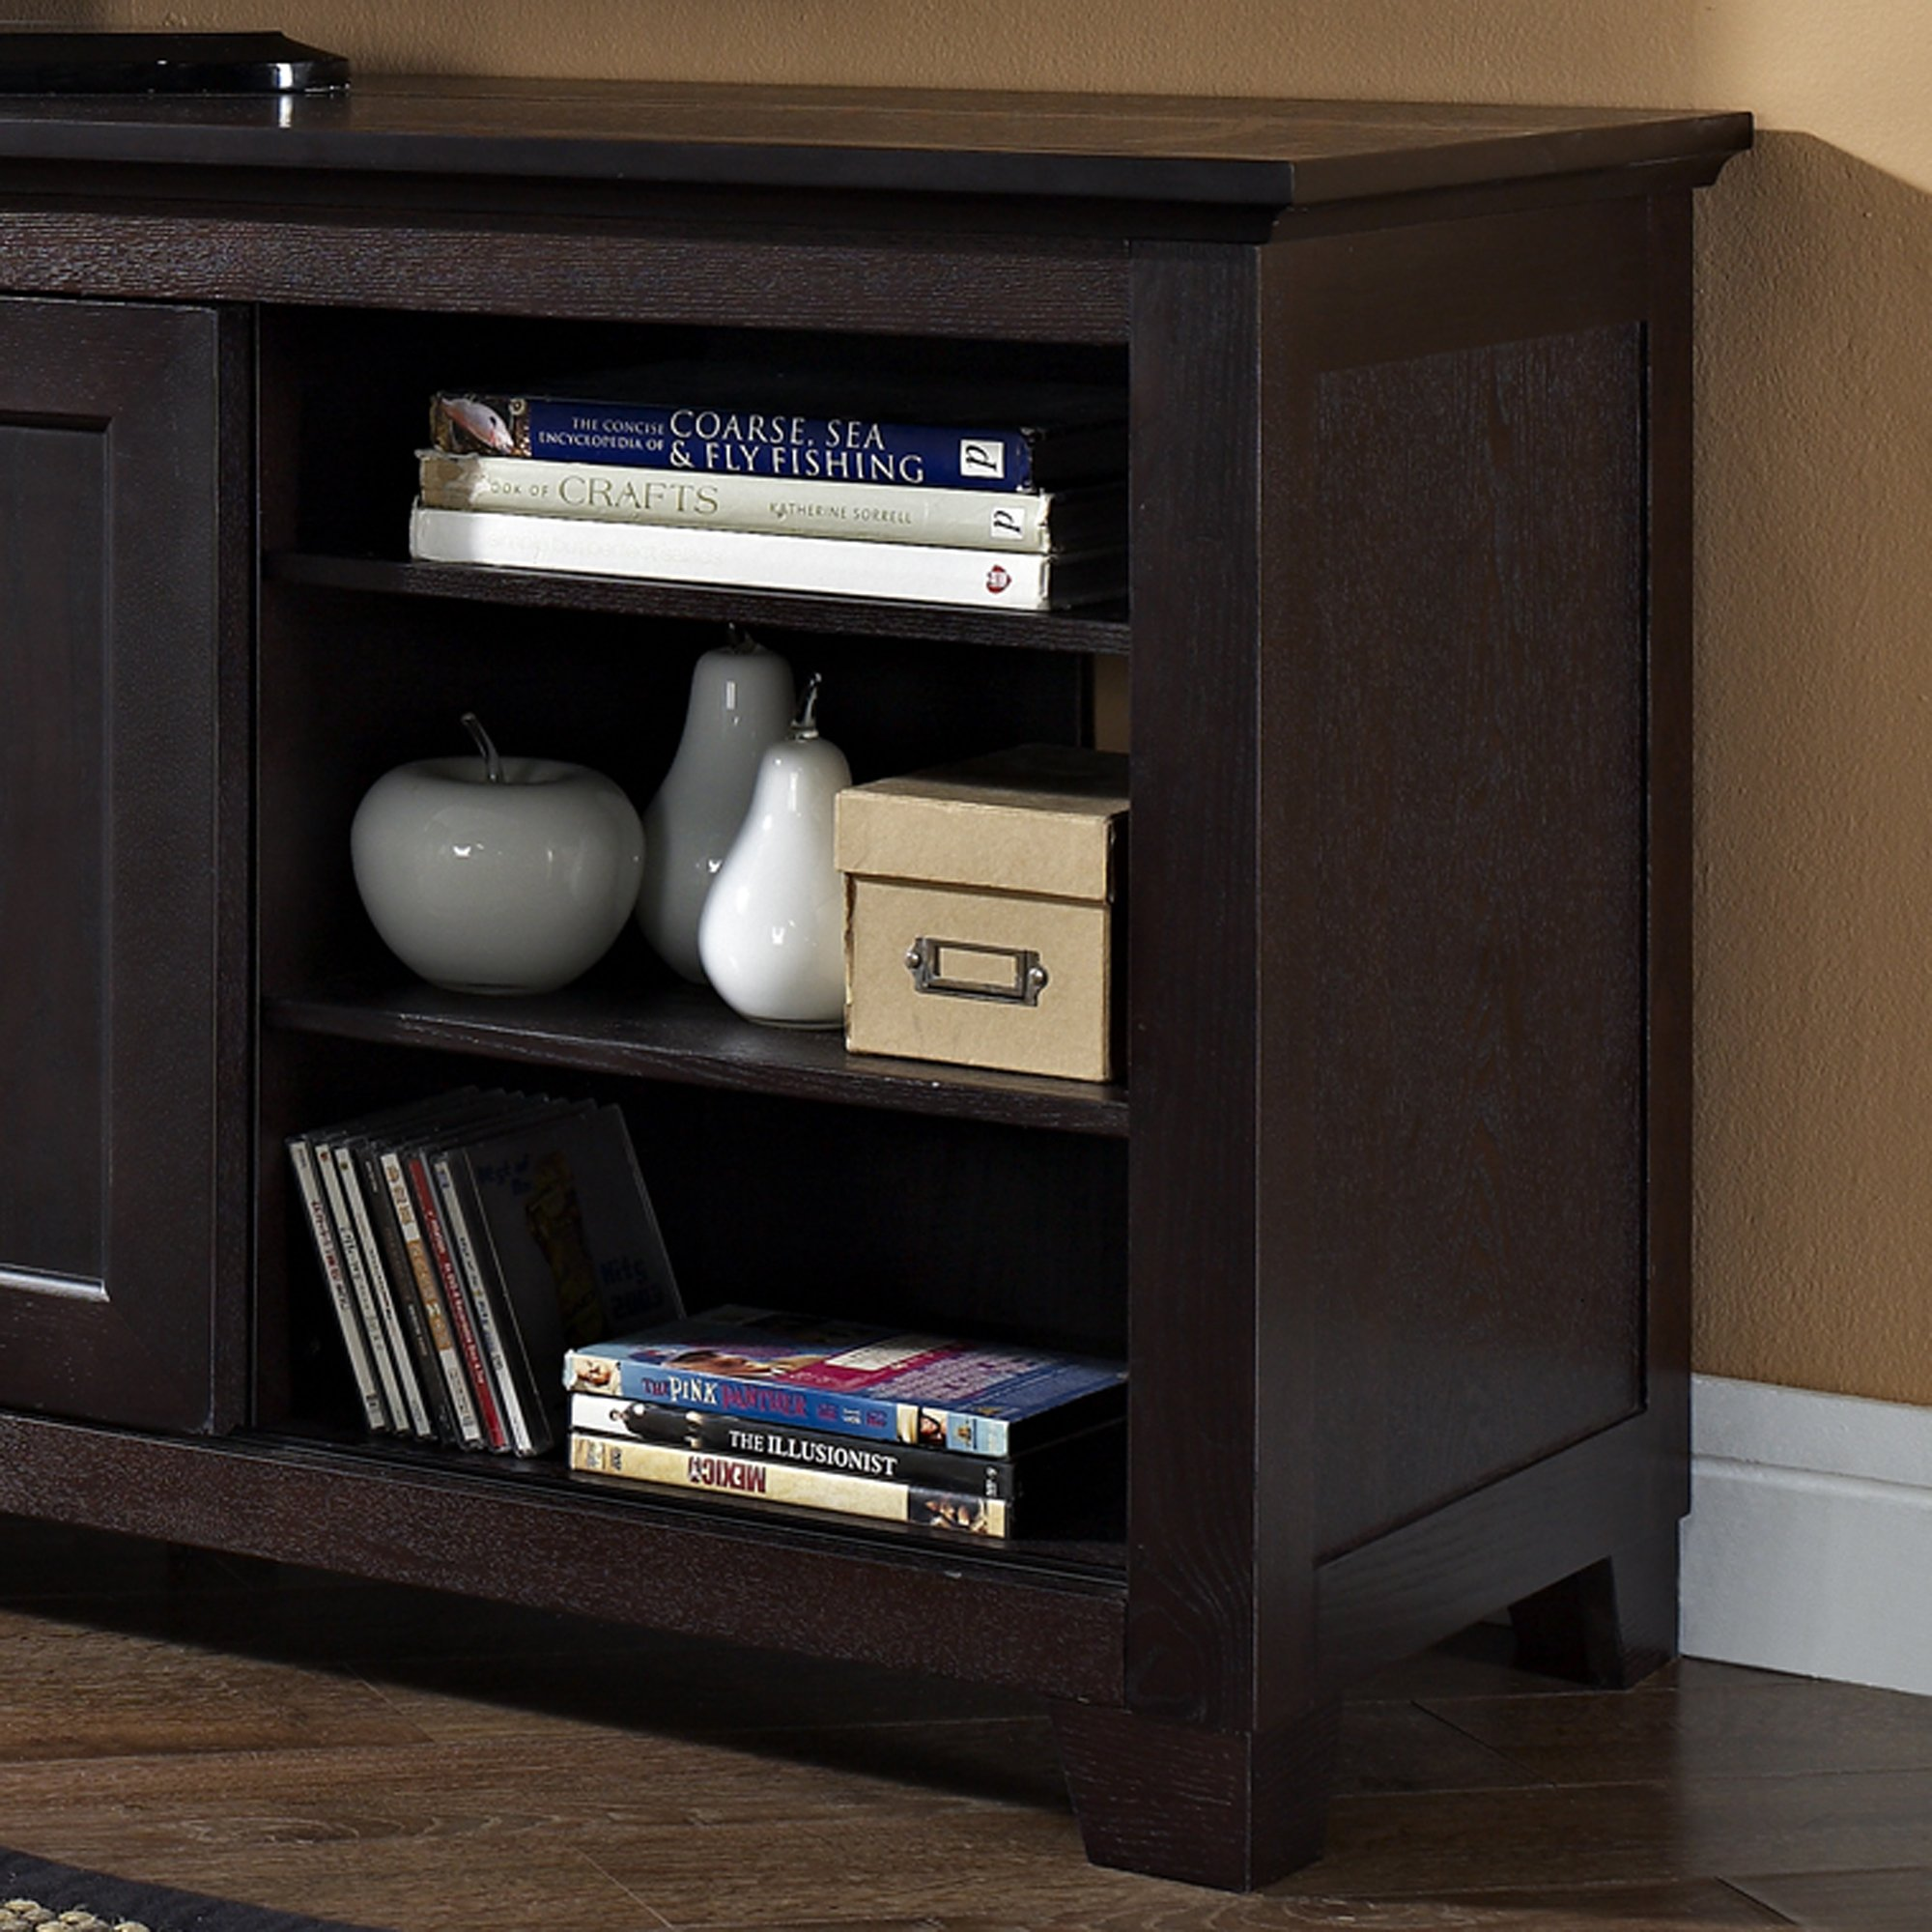 We Furniture Wood Tv Stand With Sliding Doors 70 Inch Espresso